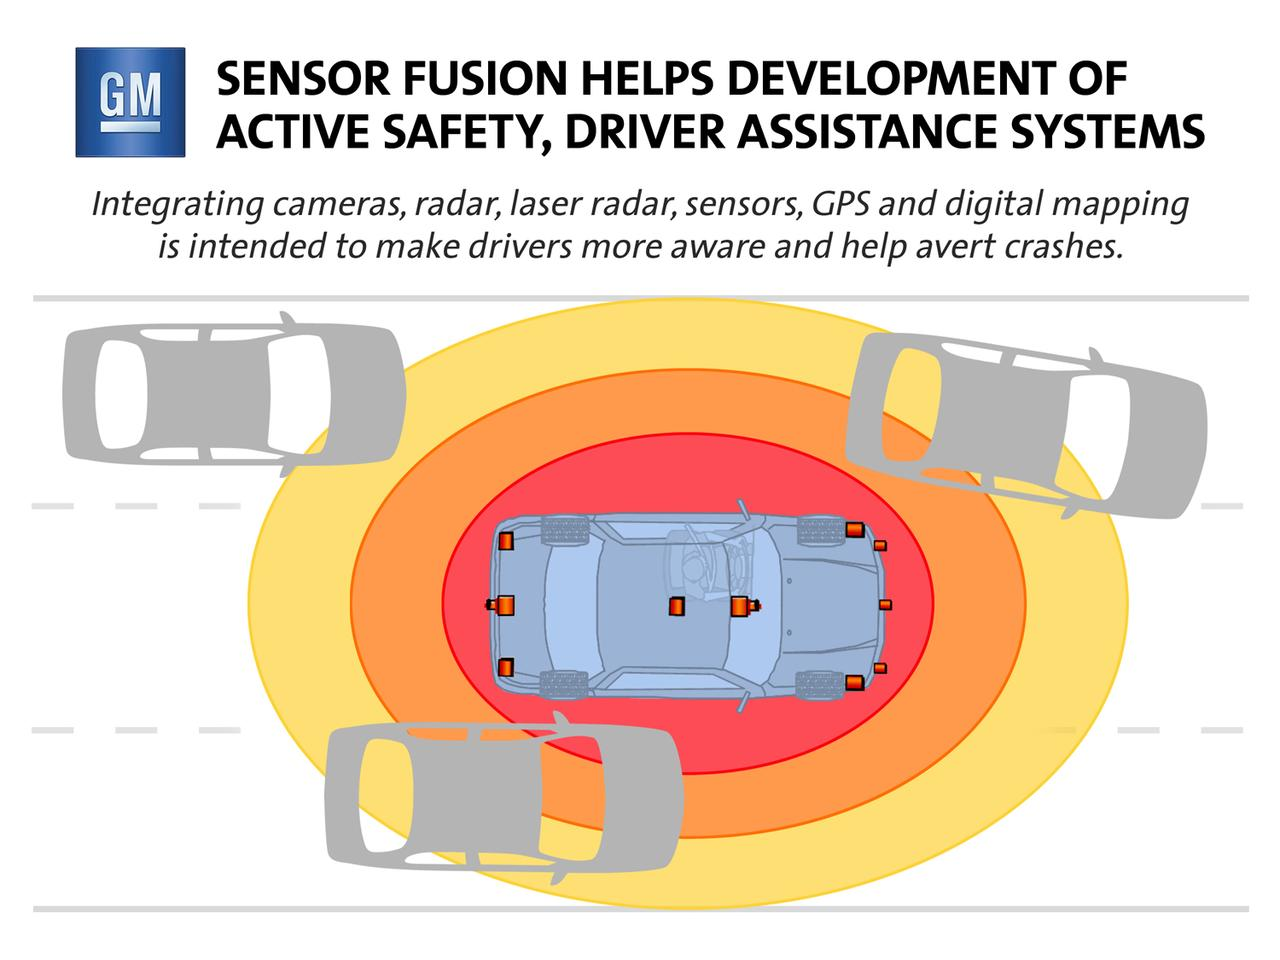 A camera, sensors and radar help identify targets on the road to avoid collision